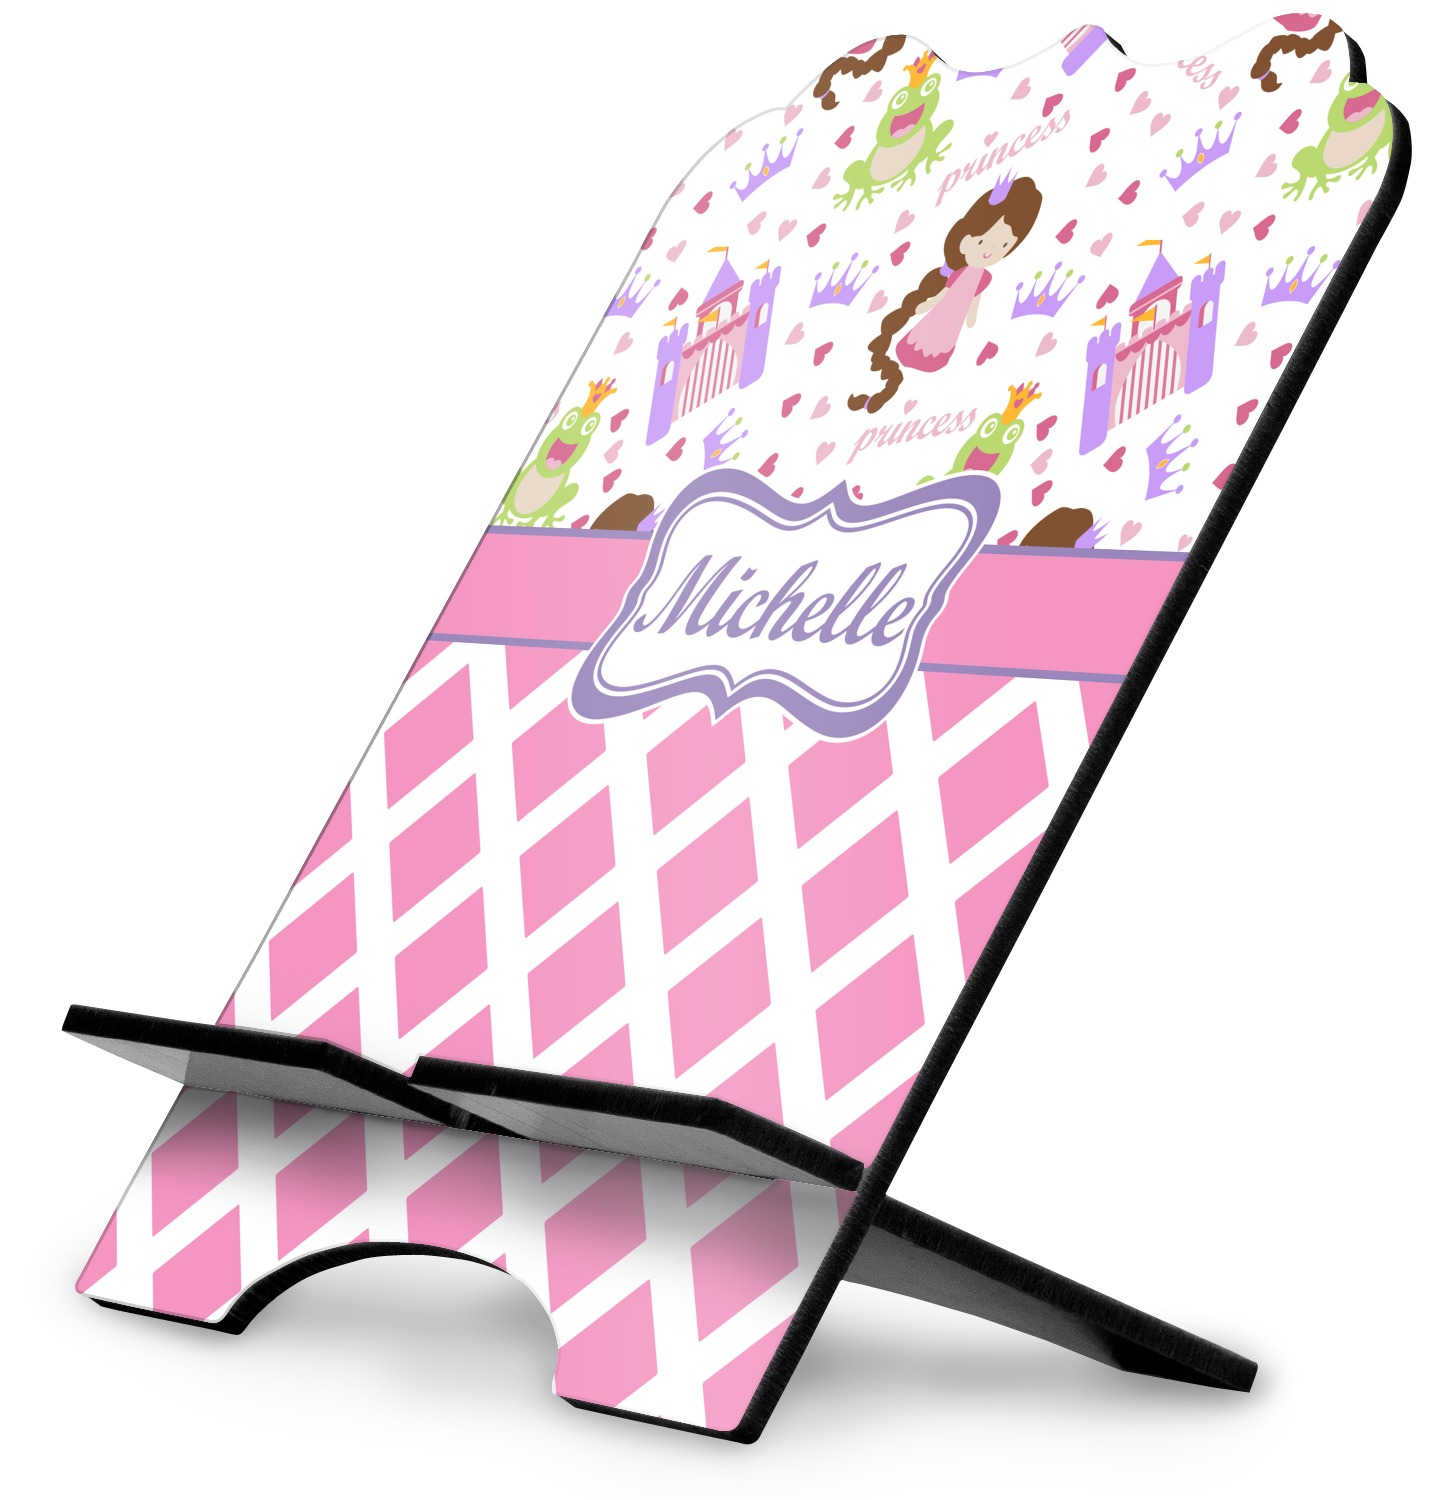 YouCustomizeIt Leopard Print Stylized Tablet Stand Personalized